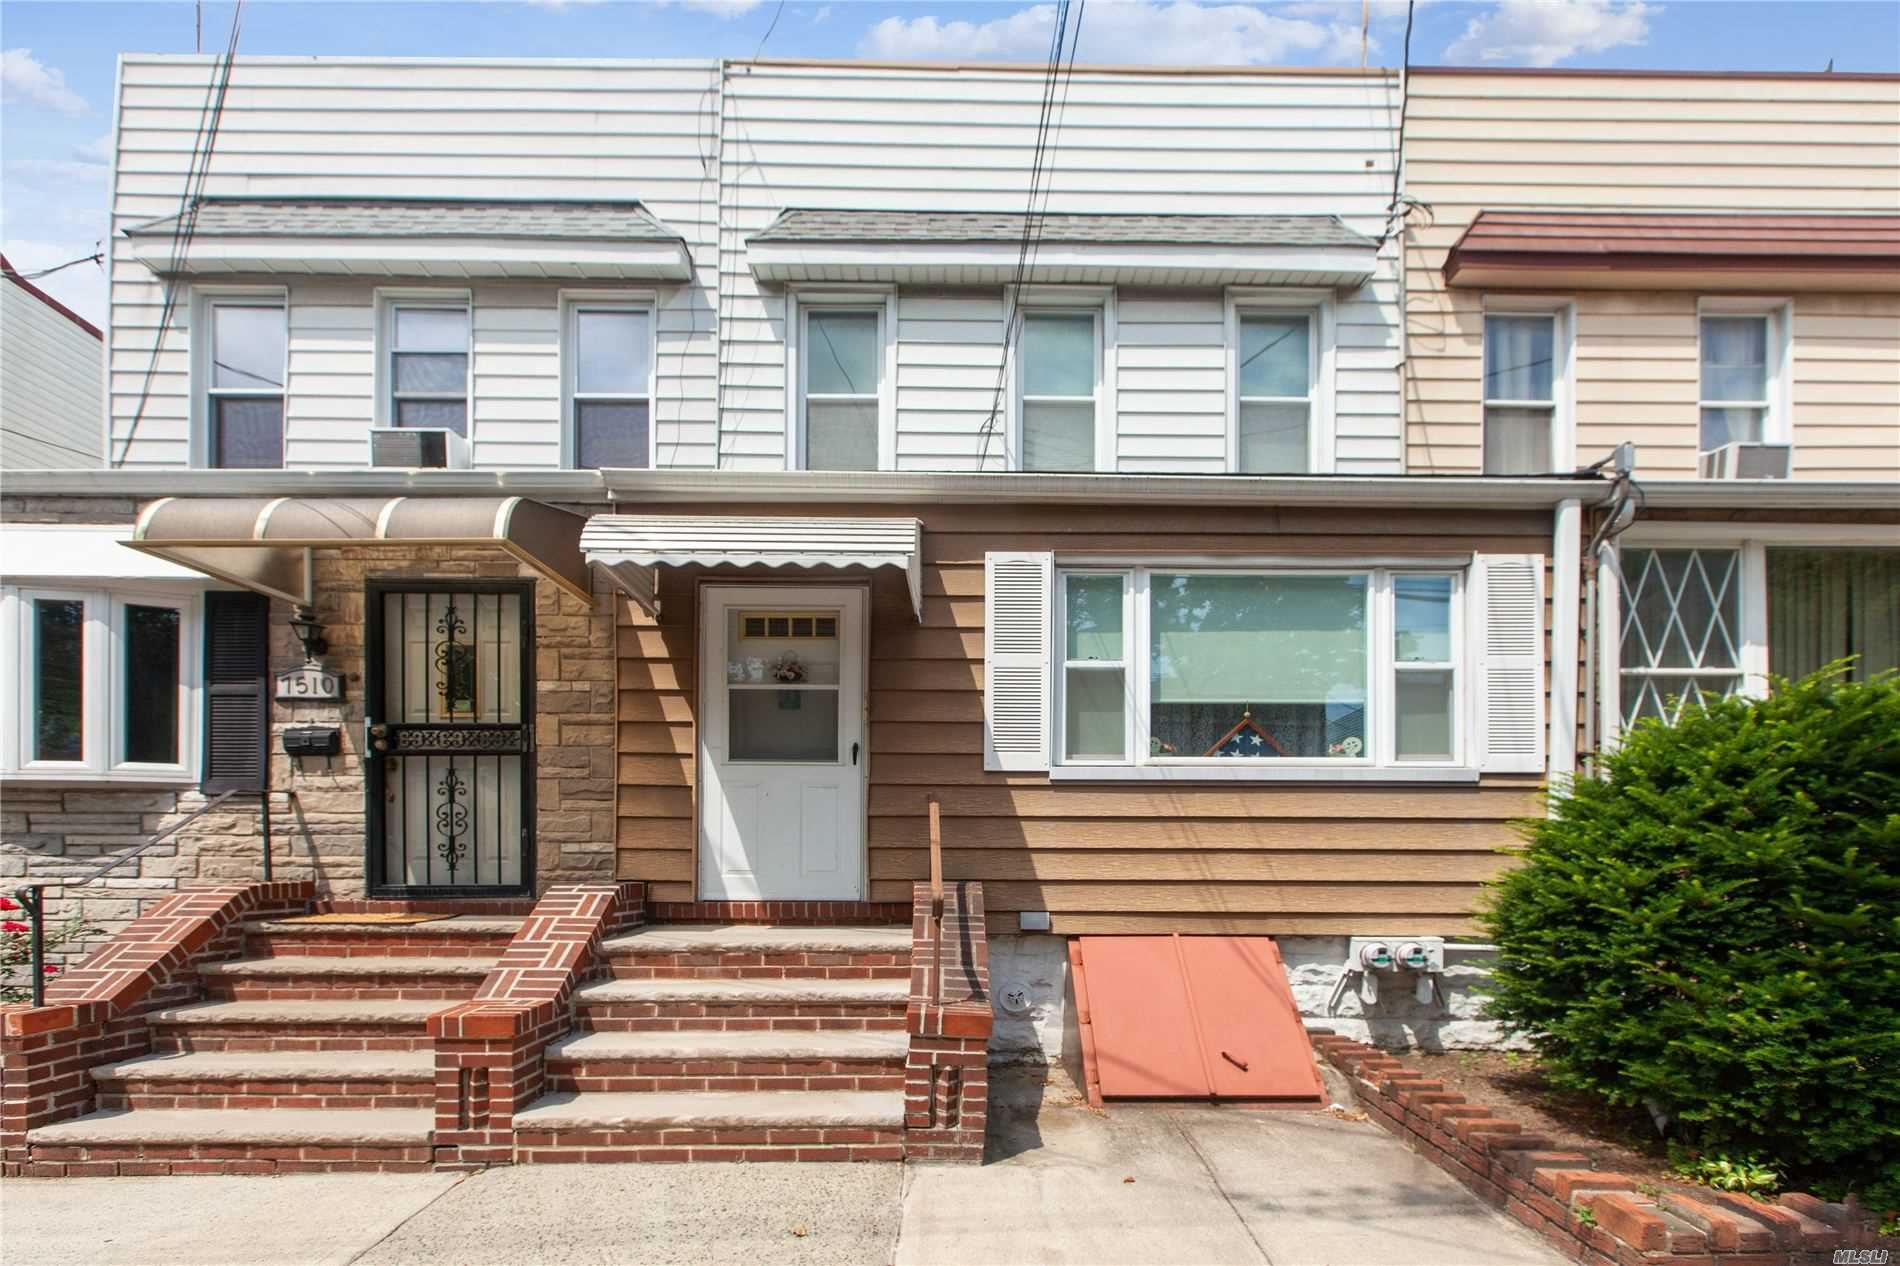 75-08 60th Place, Glendale, NY 11385 - MLS#: 3231594